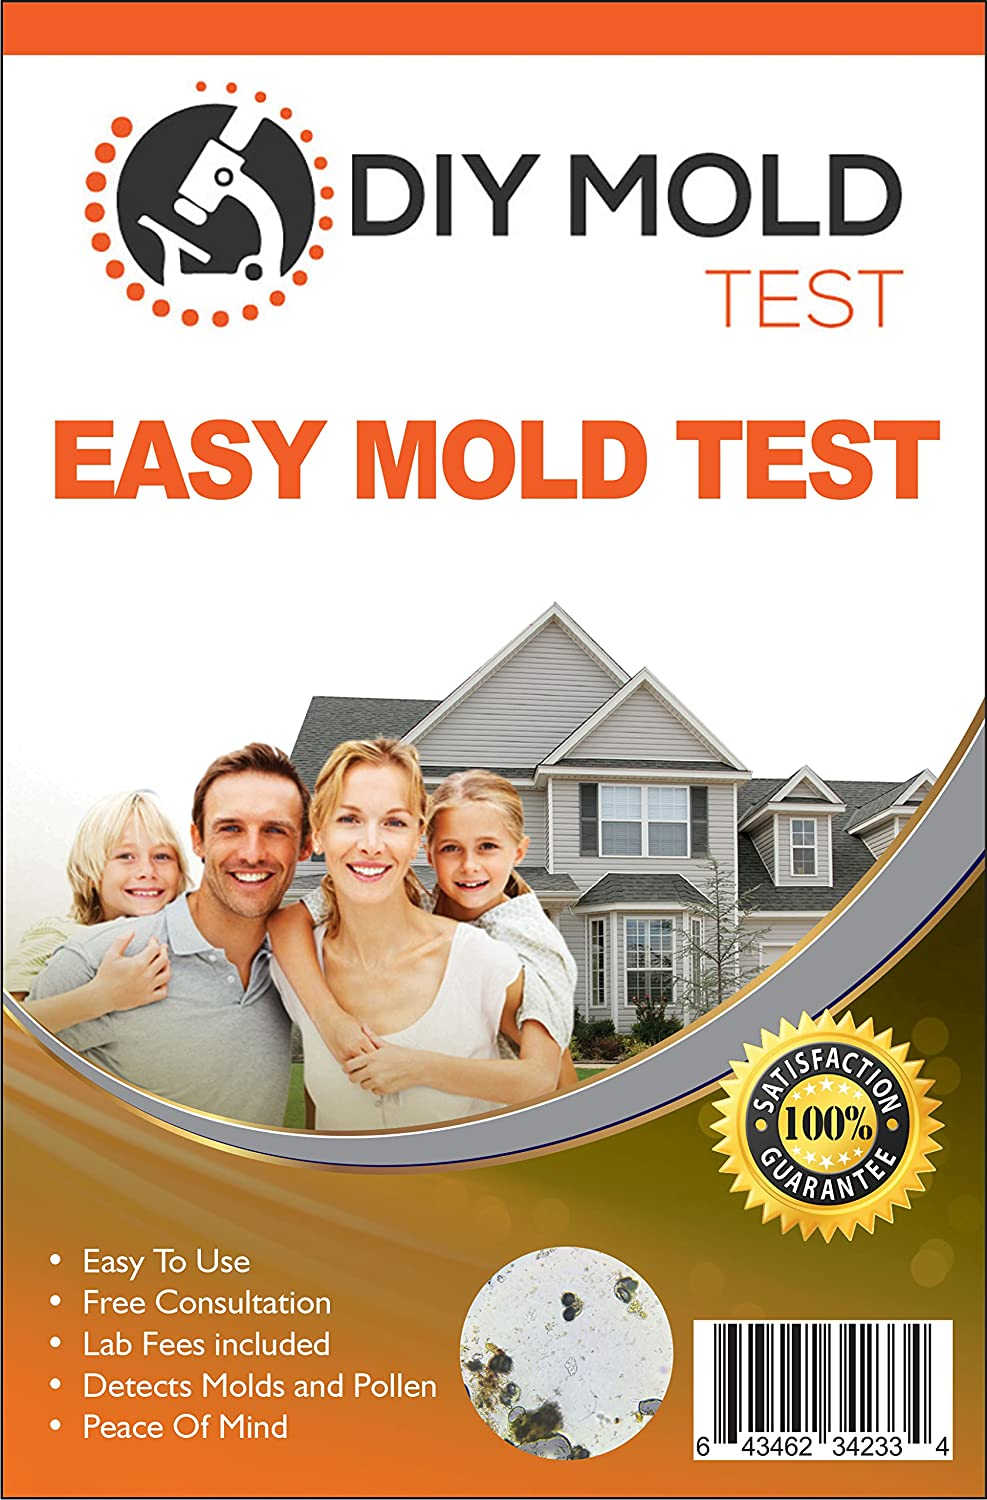 DIY Mold Test, Mold Testing Kit (3 tests). Lab Analysis and Expert Consultation included